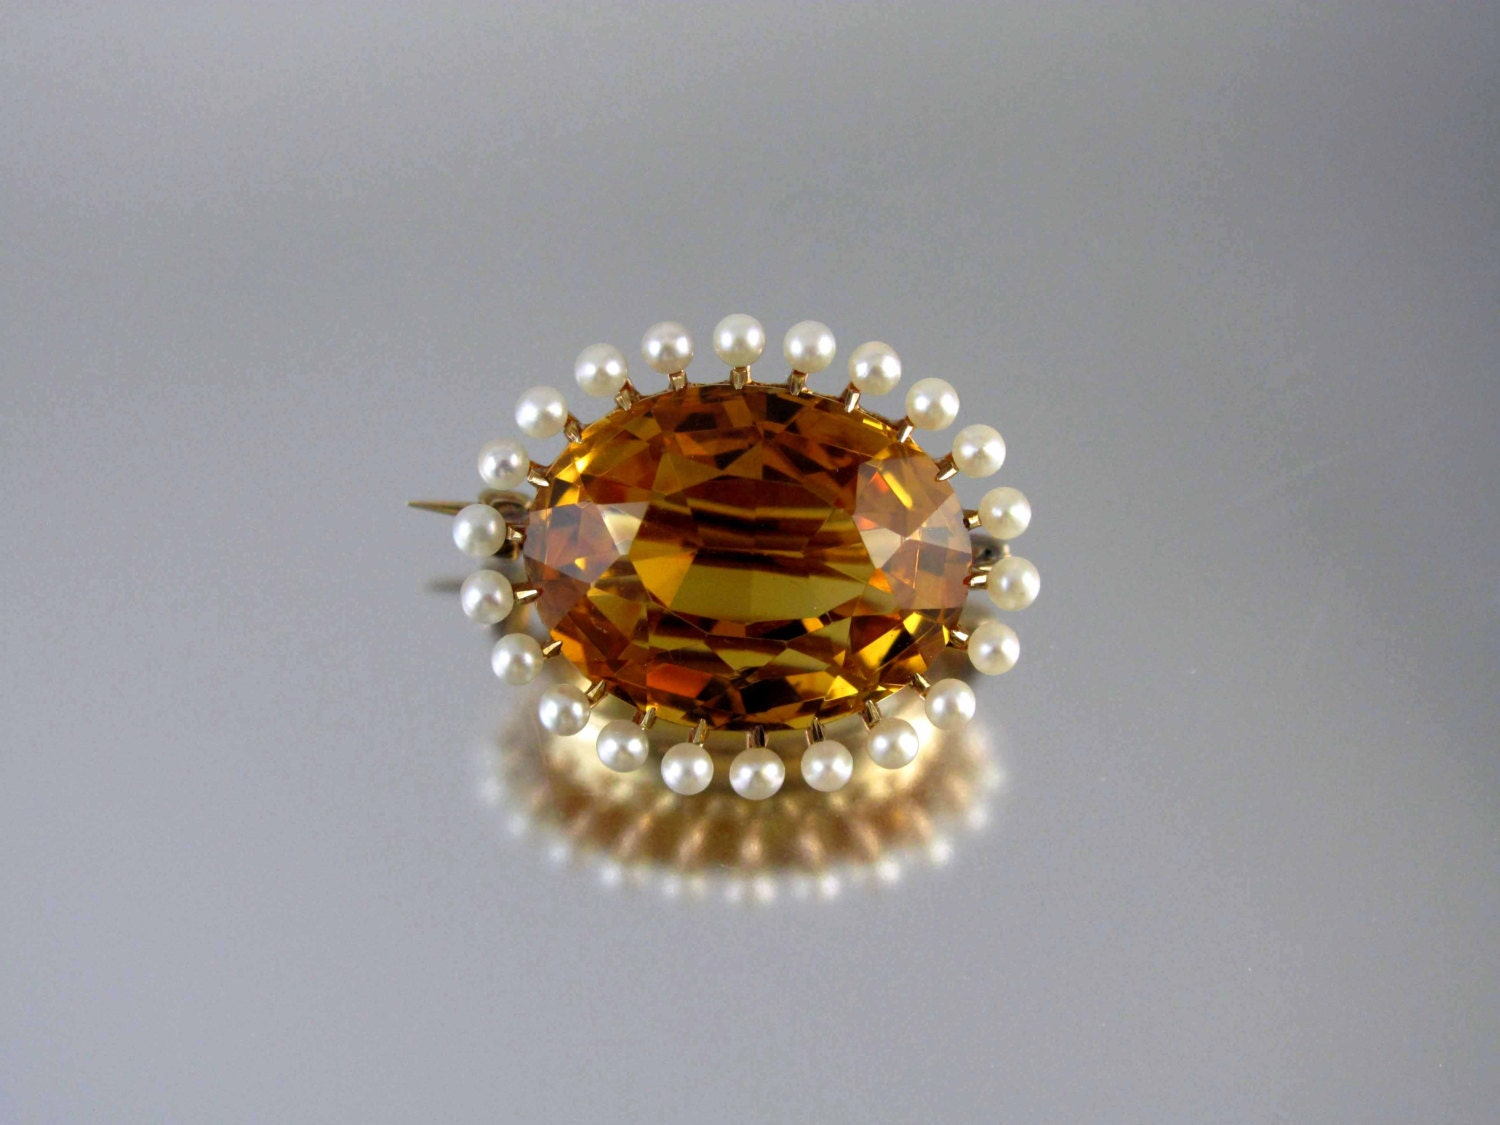 Antique Edwardian 14k gold 15 carat citrine seed pearl brooch pin